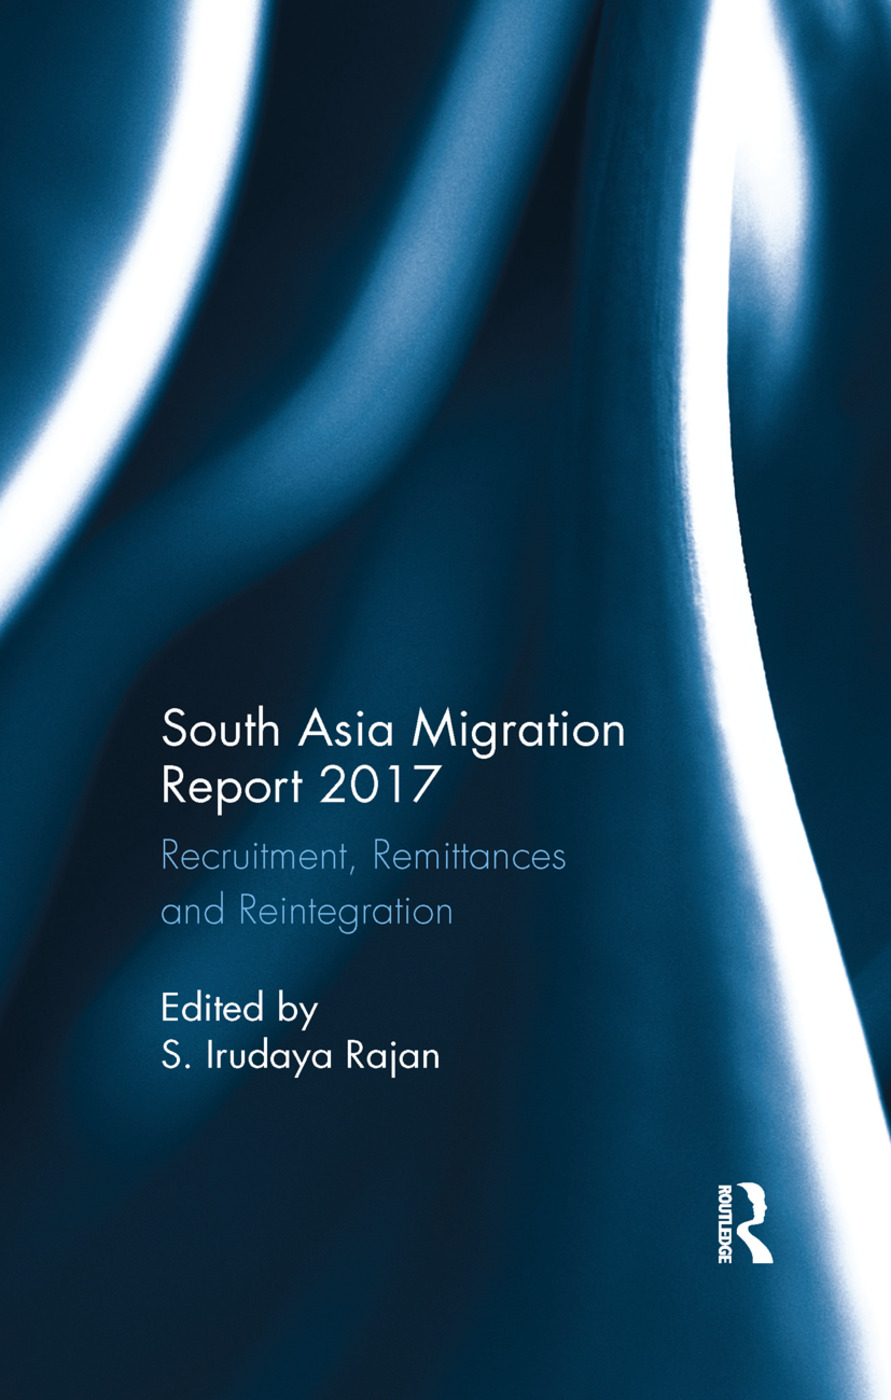 South Asia Migration Report 2017: Recruitment, Remittances and Reintegration book cover